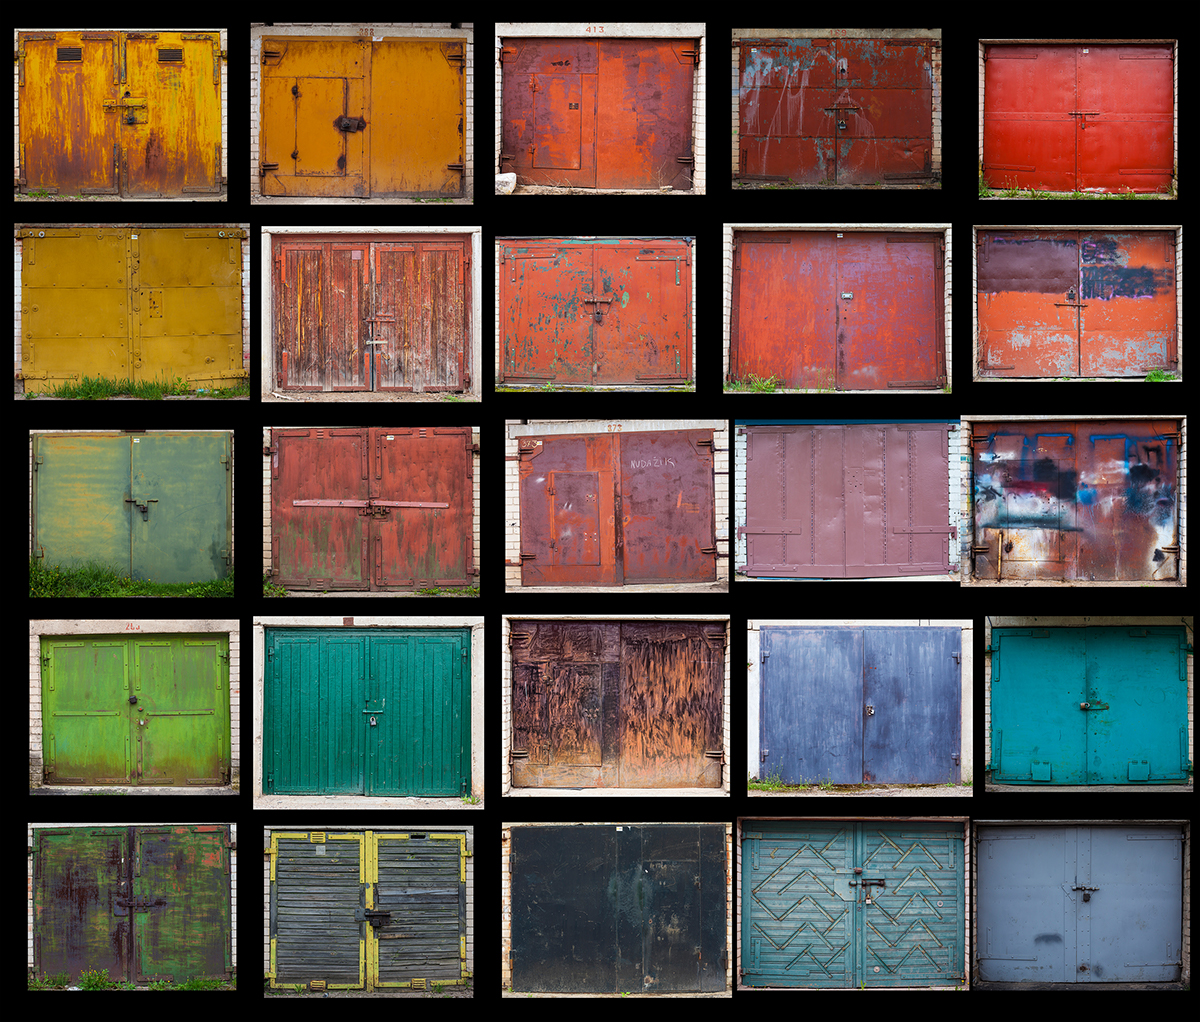 beauty-remains-garage-doors-agne-gintalaite-everythingwithatwist-04